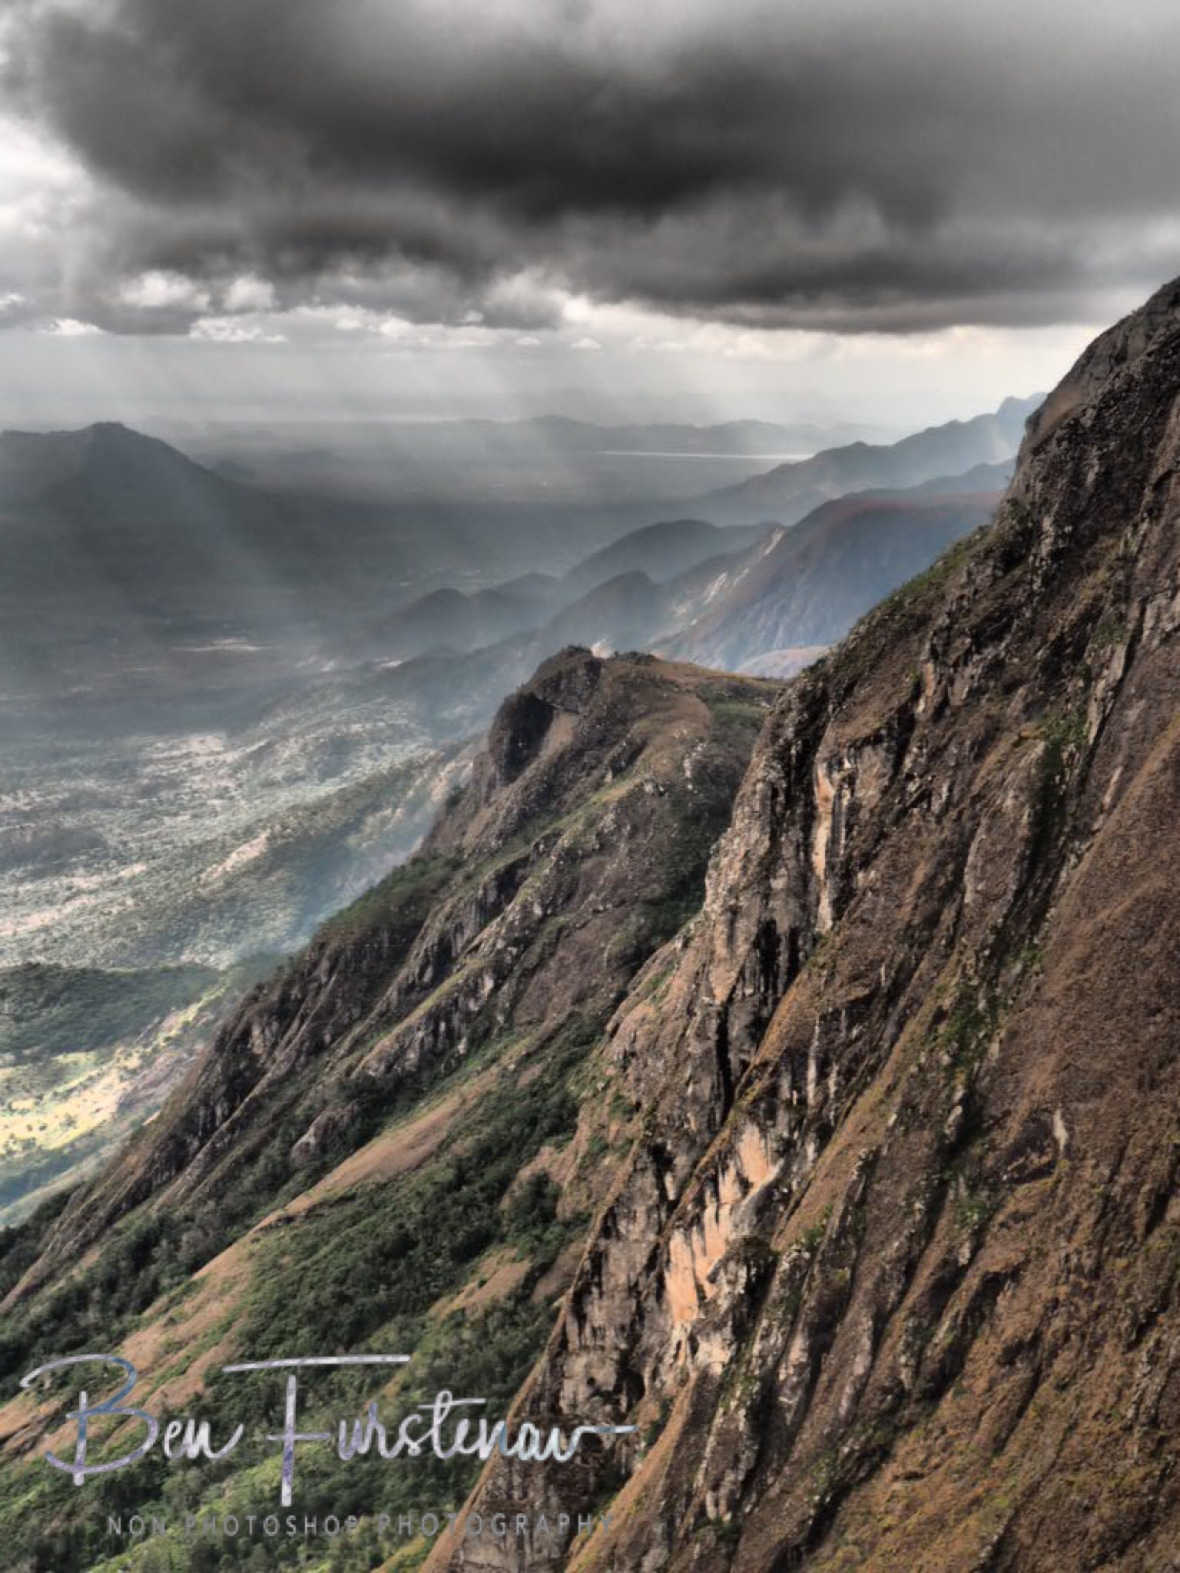 Mountains and Valleys near and far, Mulanje Mountains, Malawi